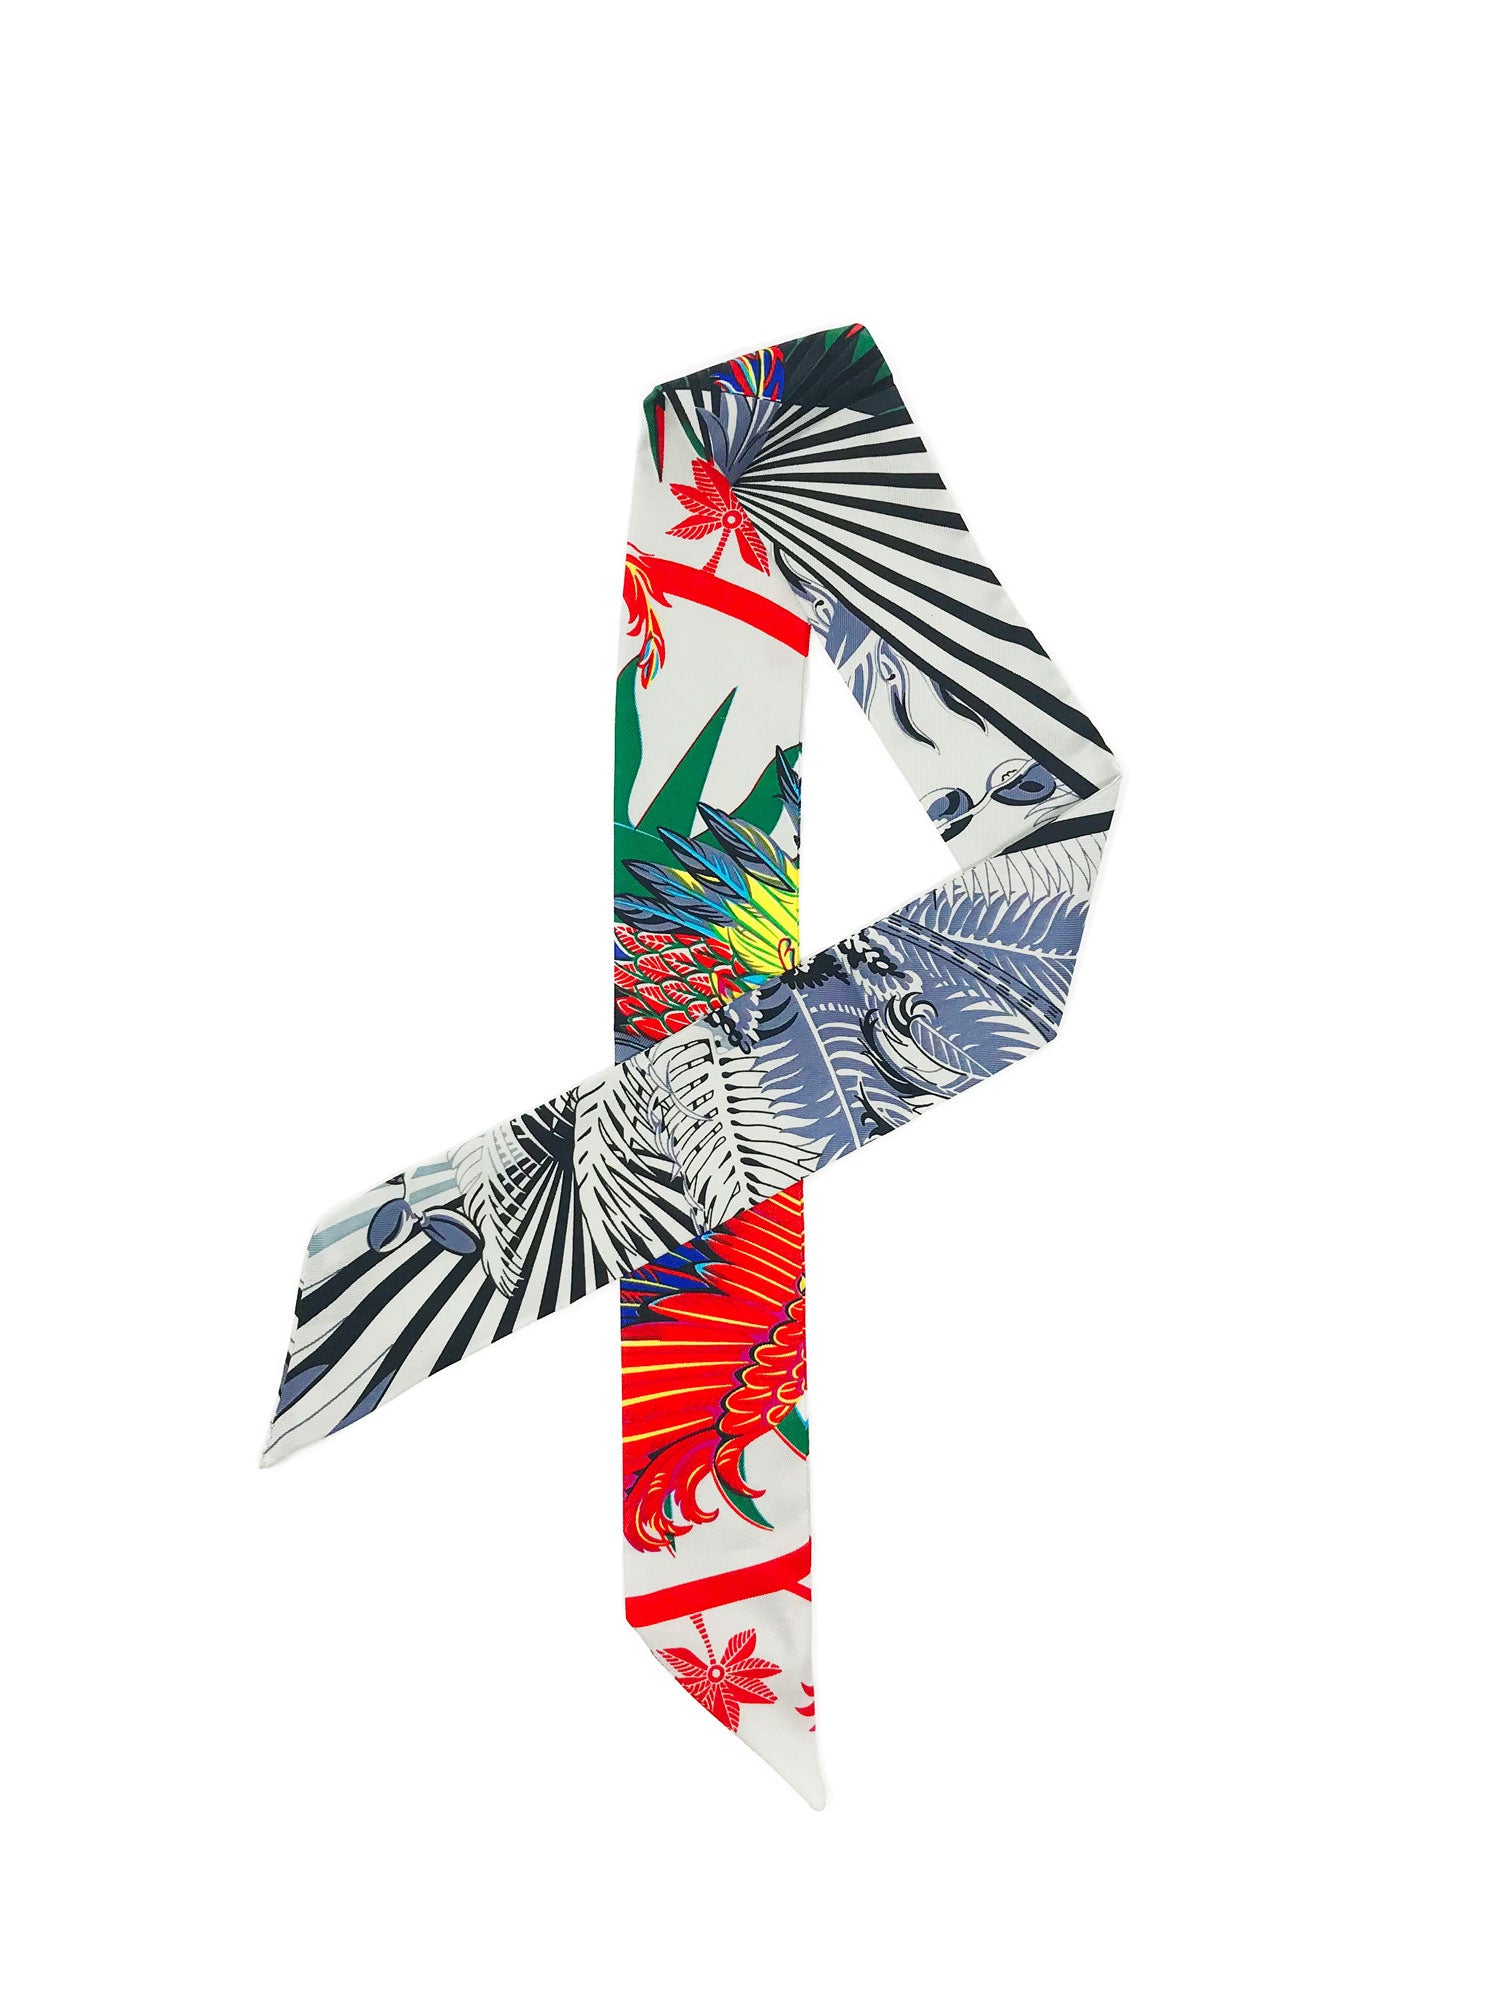 Cuckoo B Candela Scarf. Skinny silk, printed wil jungle motifs and colors.